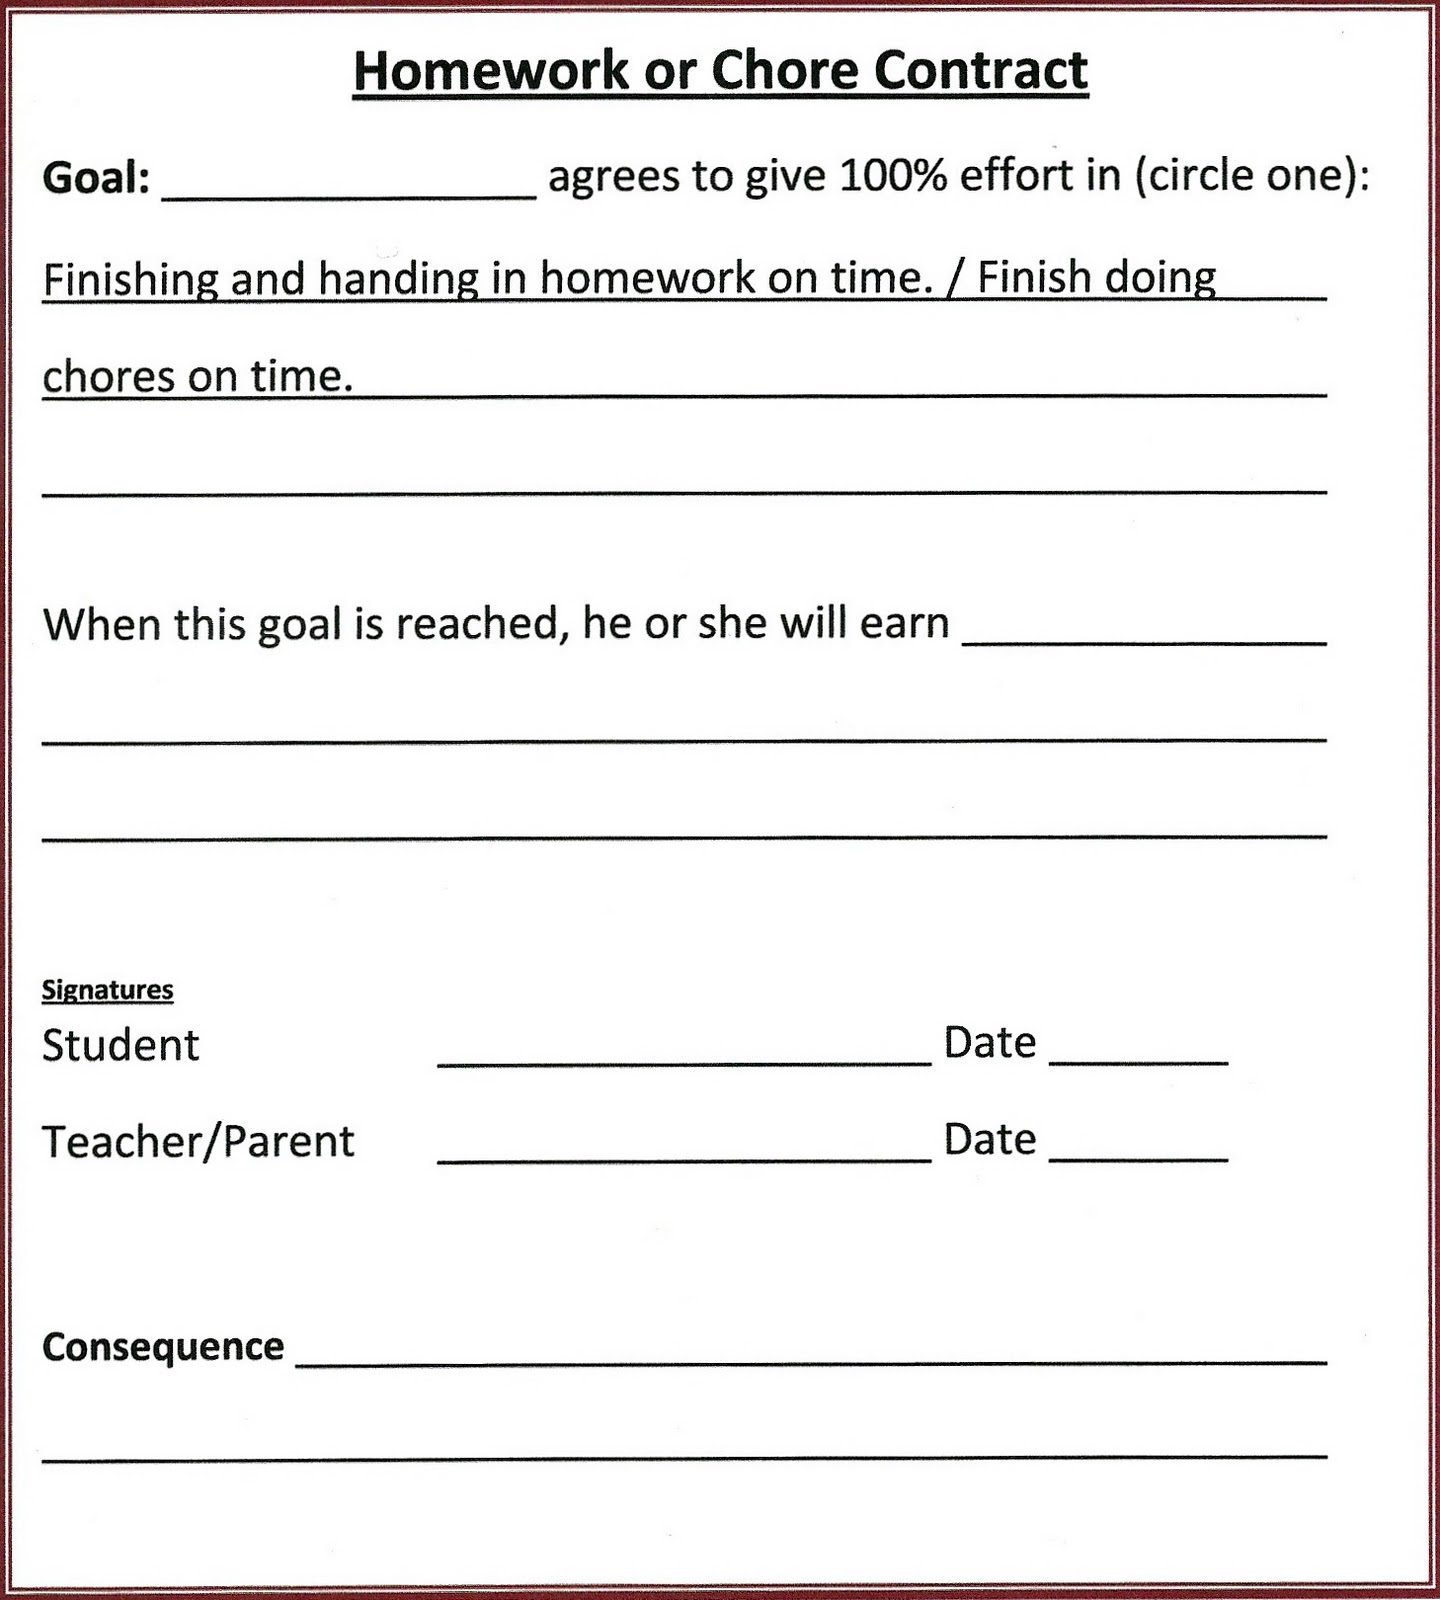 Lfs Singapore Student Contract For Homework Essay For You